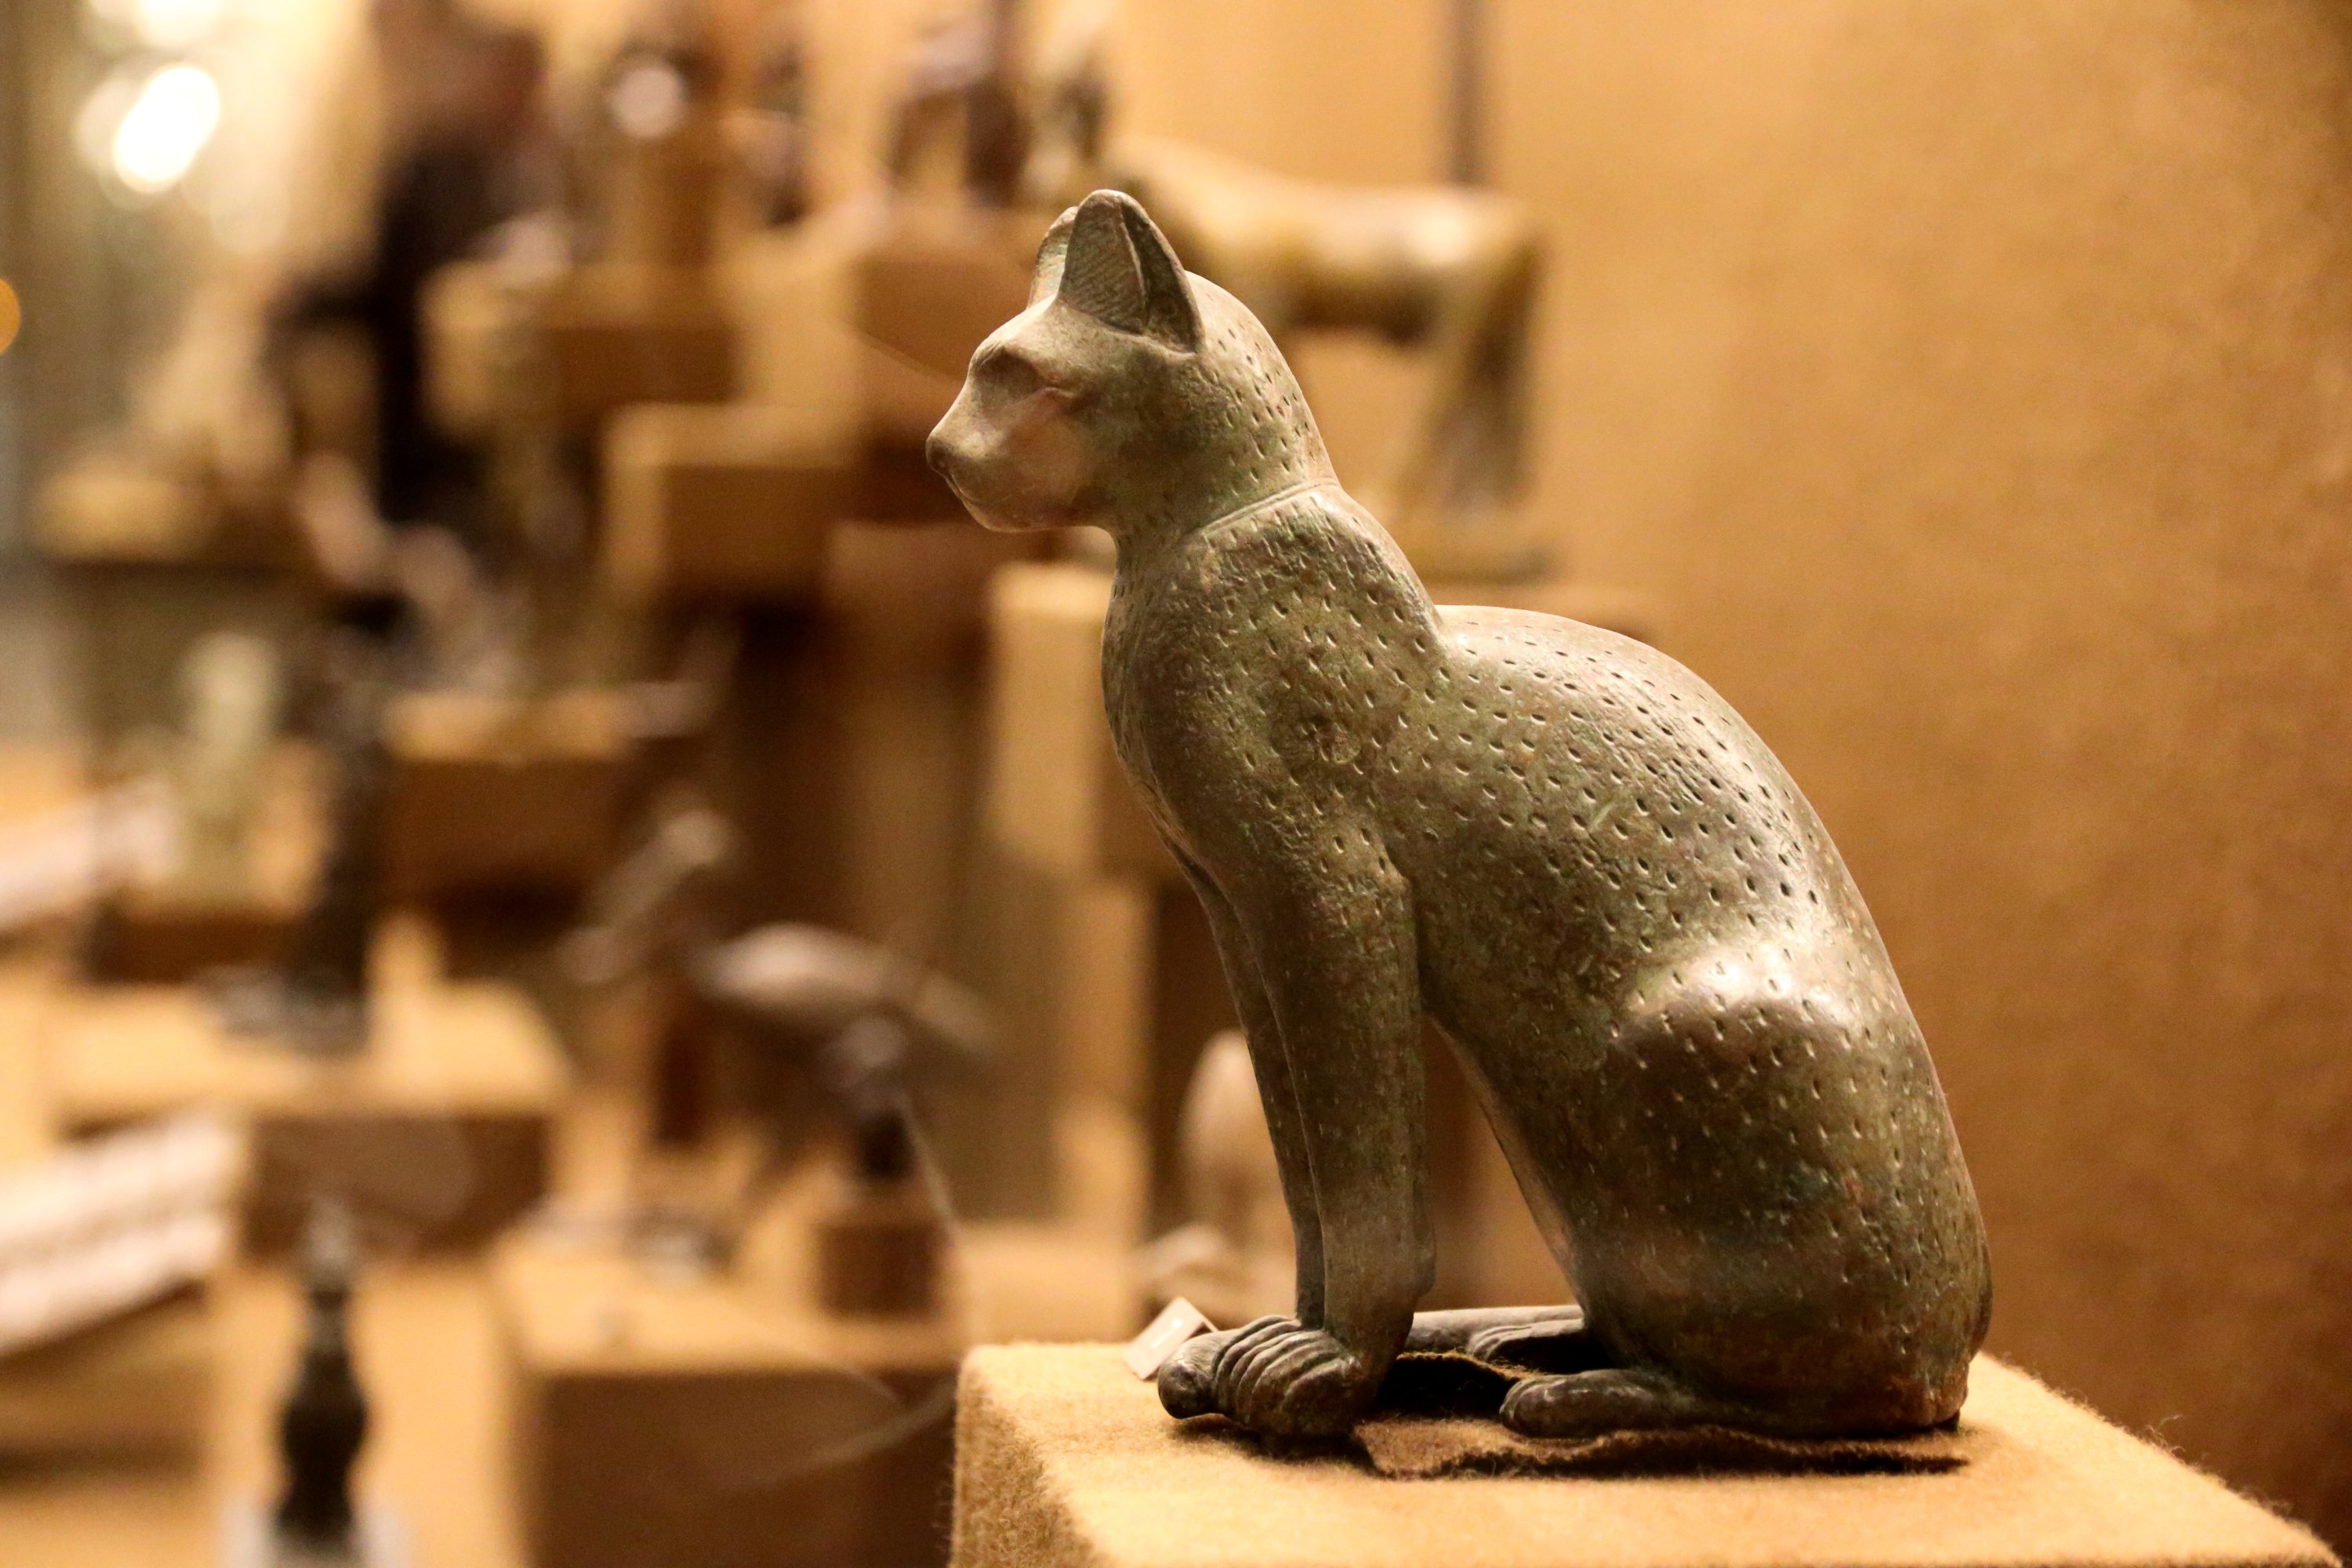 An ancient bronze statue of goddess Bastet as a cat from old Egypt at the Hermitage Museum in Saint Petersburg, Russia, Sept. 13, 2016. (Shutterstock Photo)